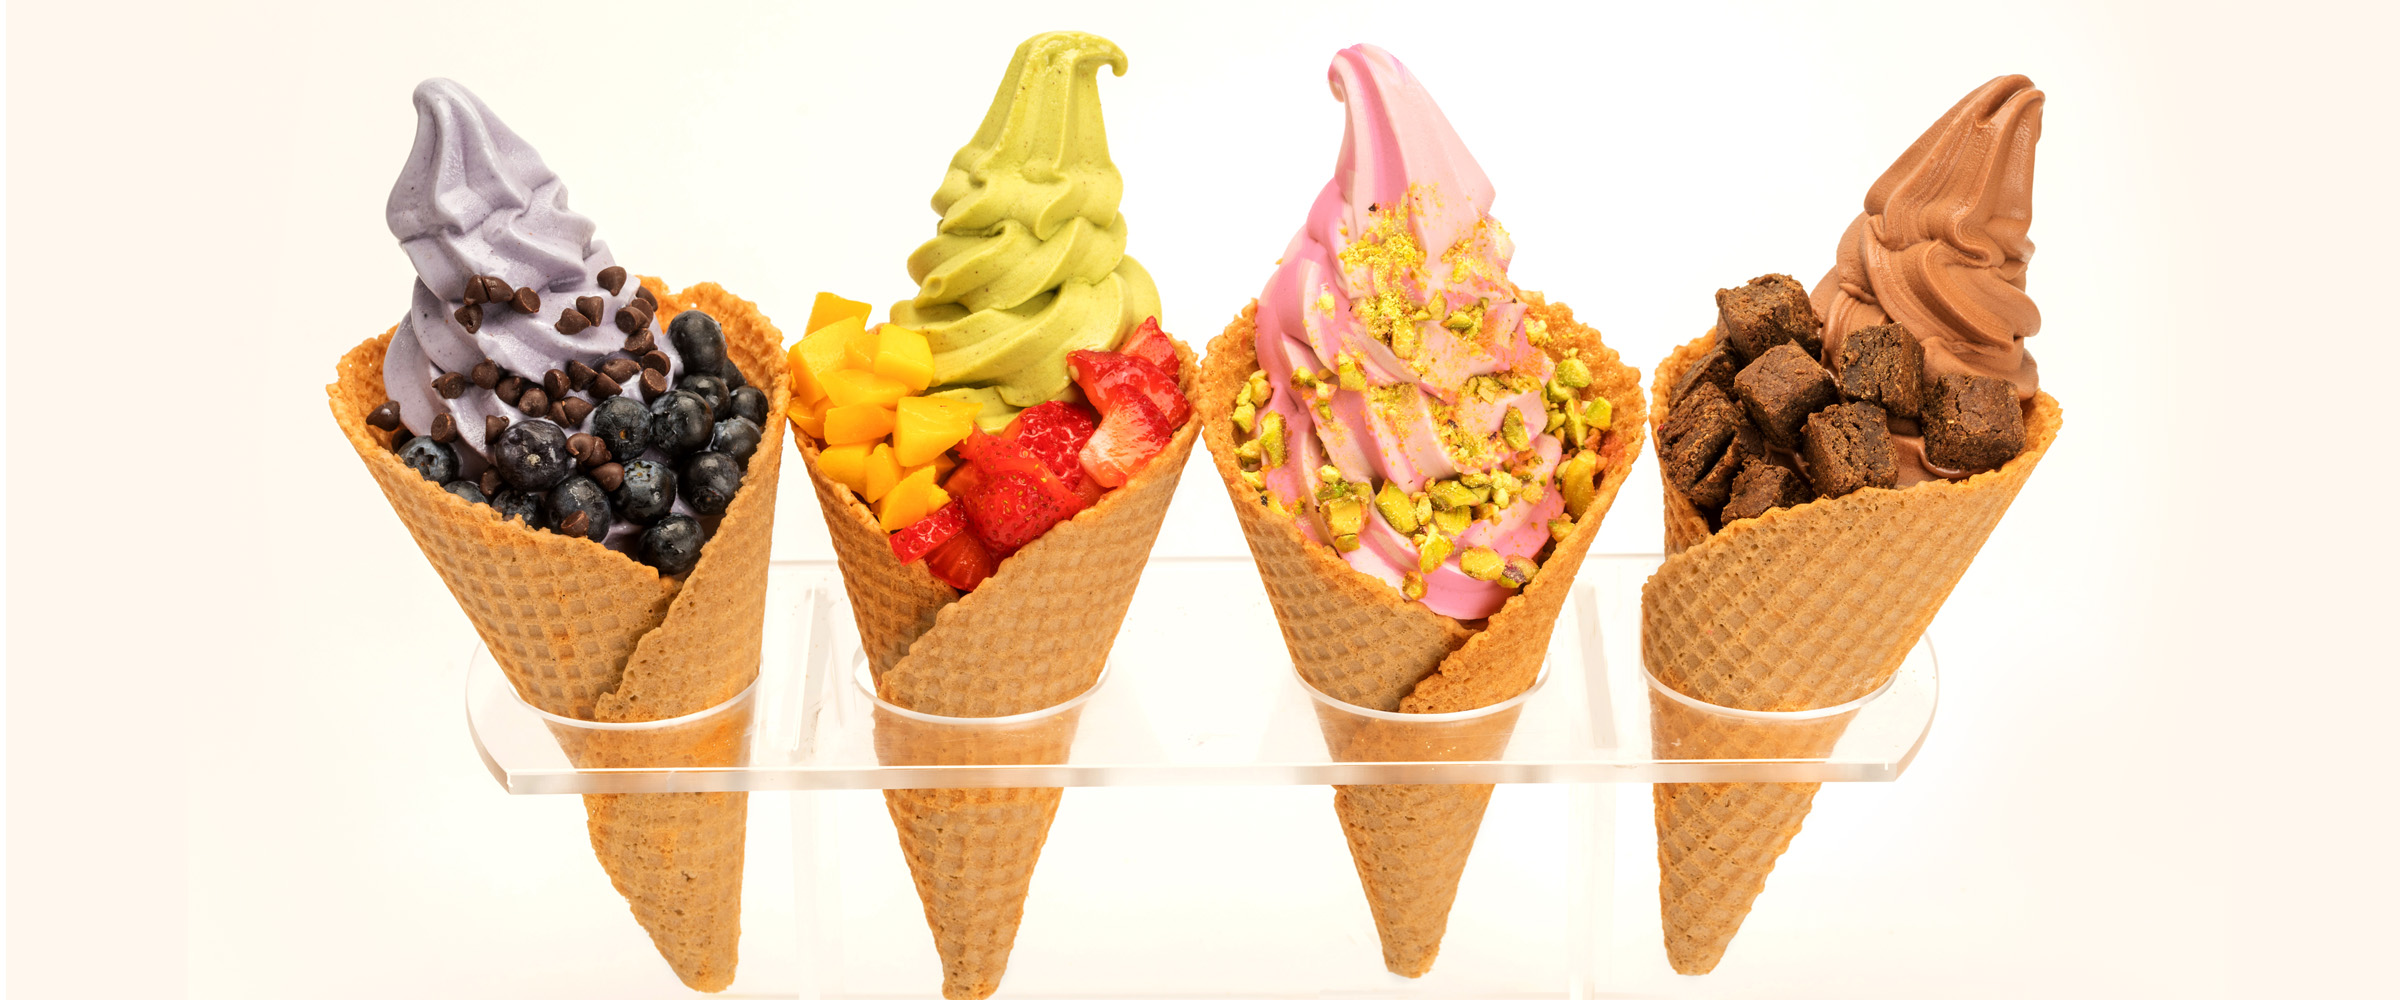 cones with toppings